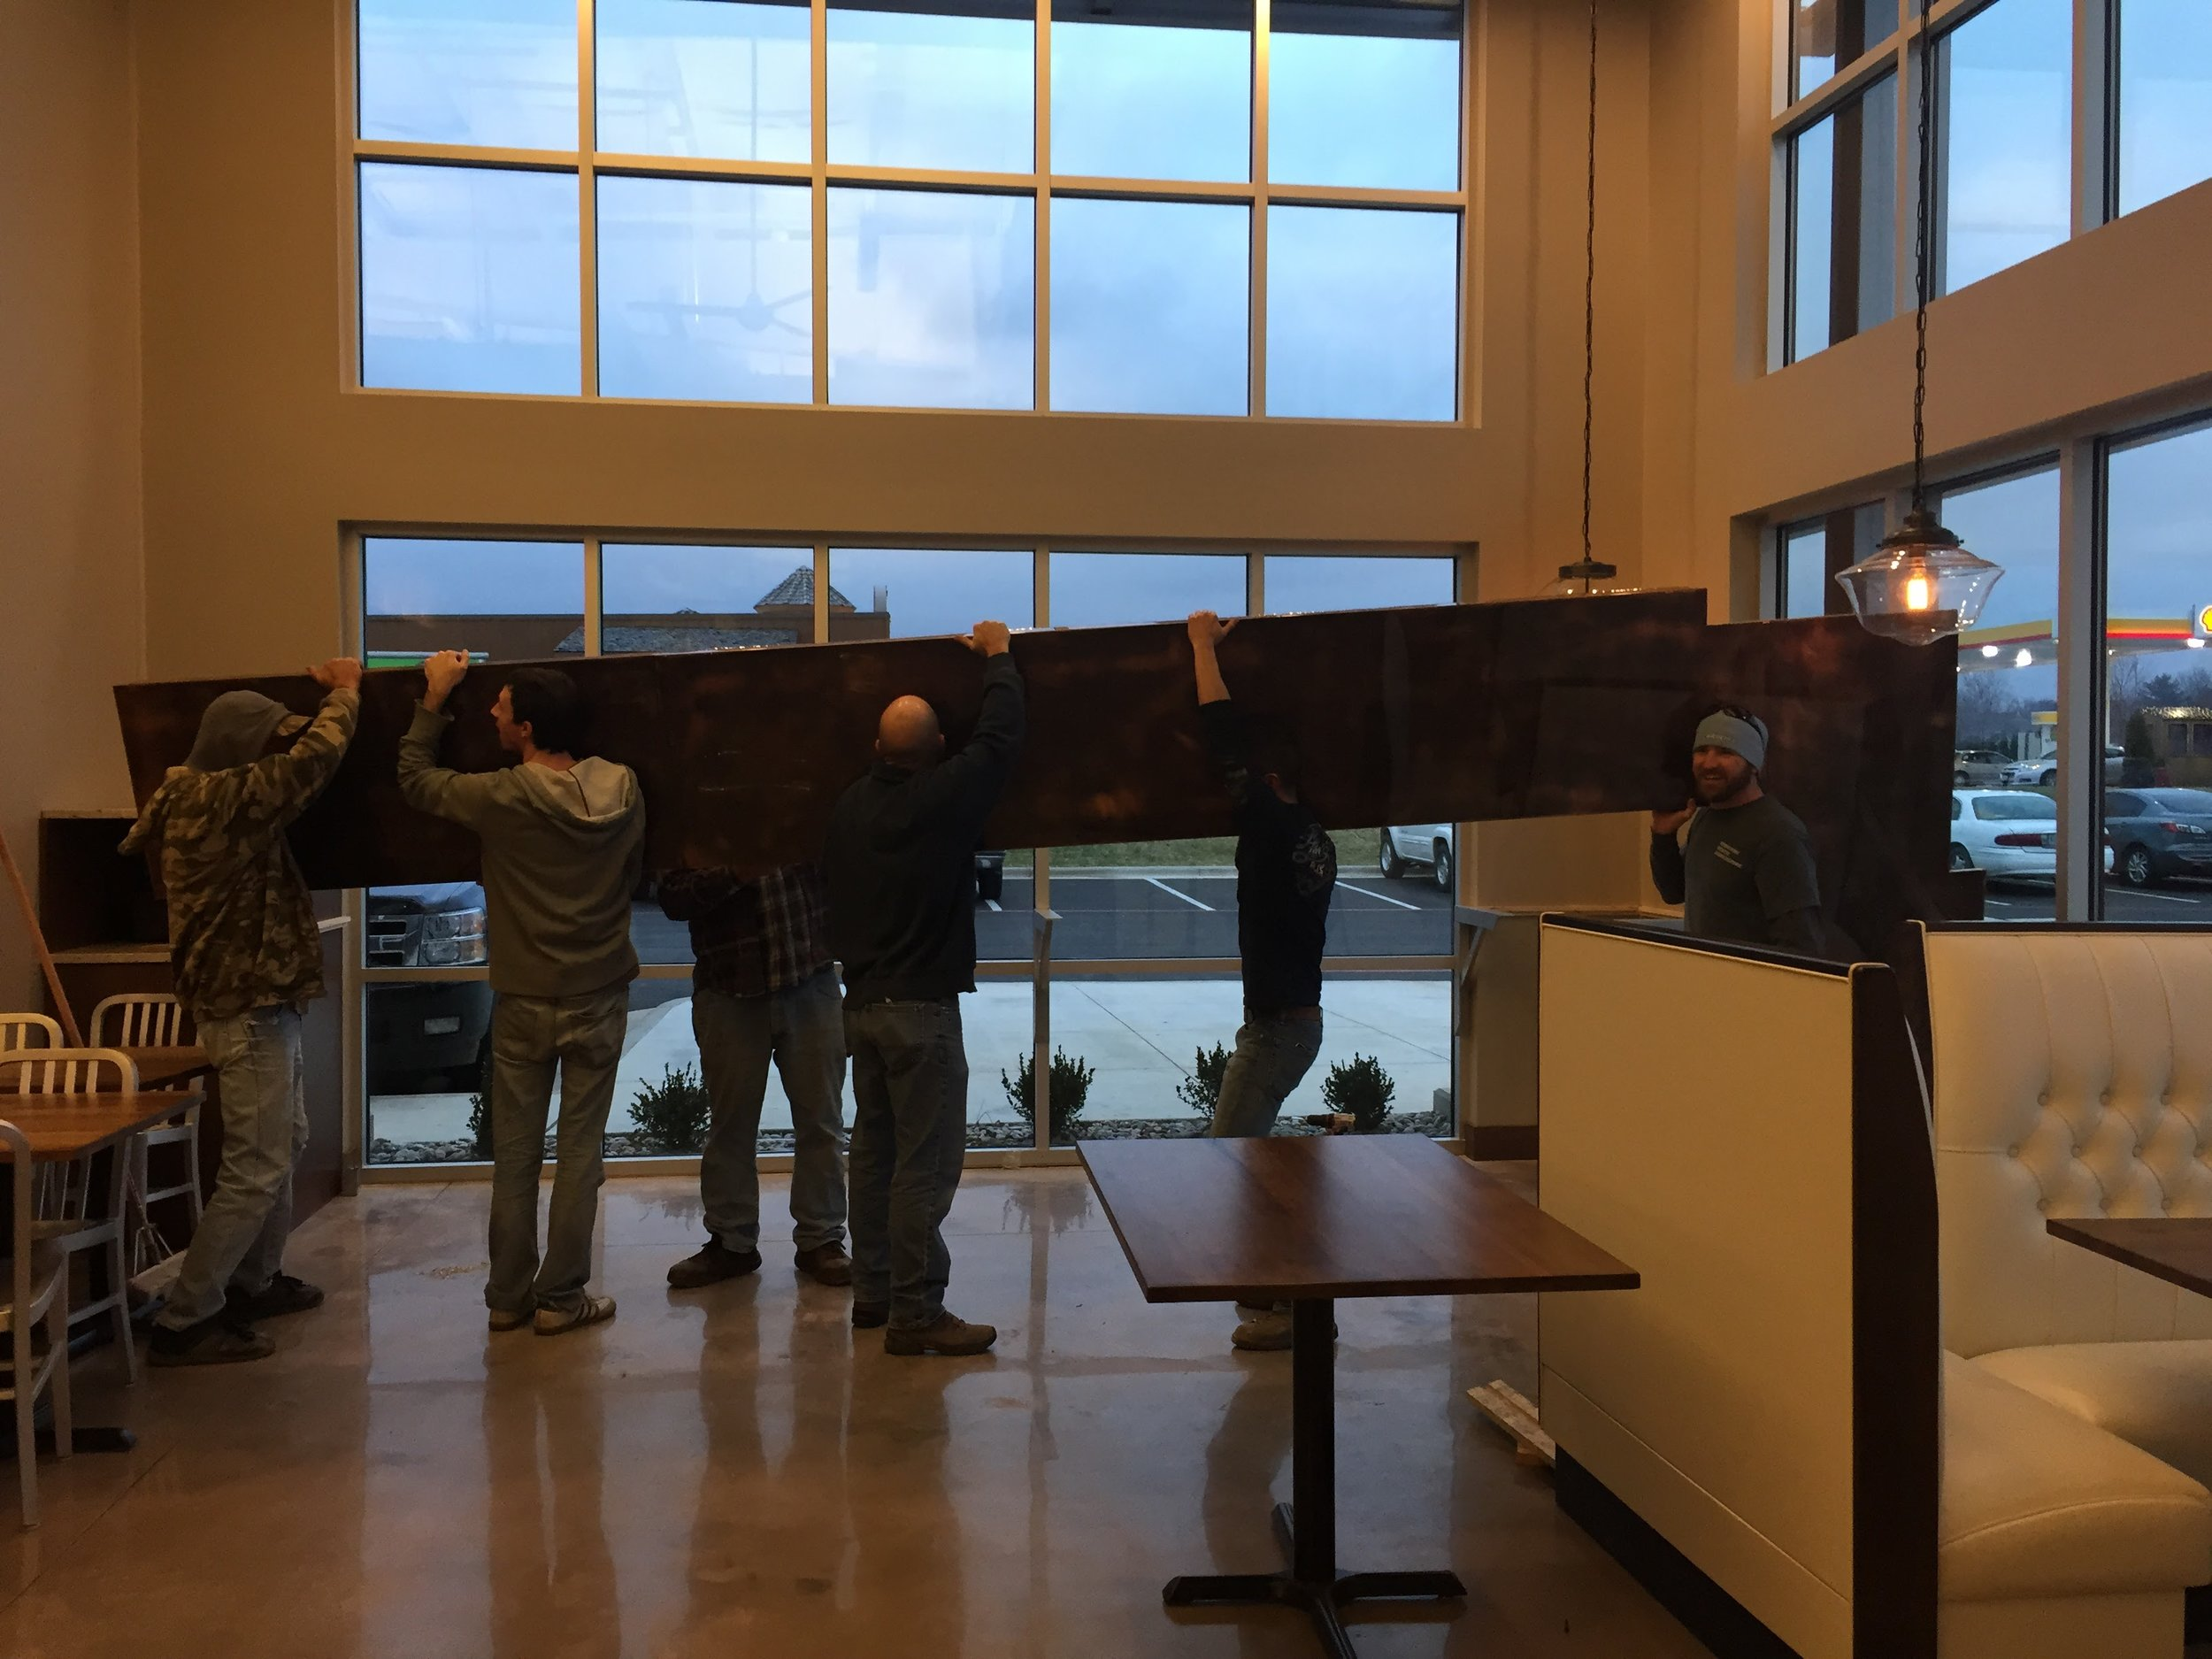 Those copper bar tops you see in two spots in our store were brought in in pieces by our contractors. And they were really heavy! This part was a little nerve-wracking. The guys over at Billings did most of our millwork. Shout out to Cory, pictured on the far Right in this photo.